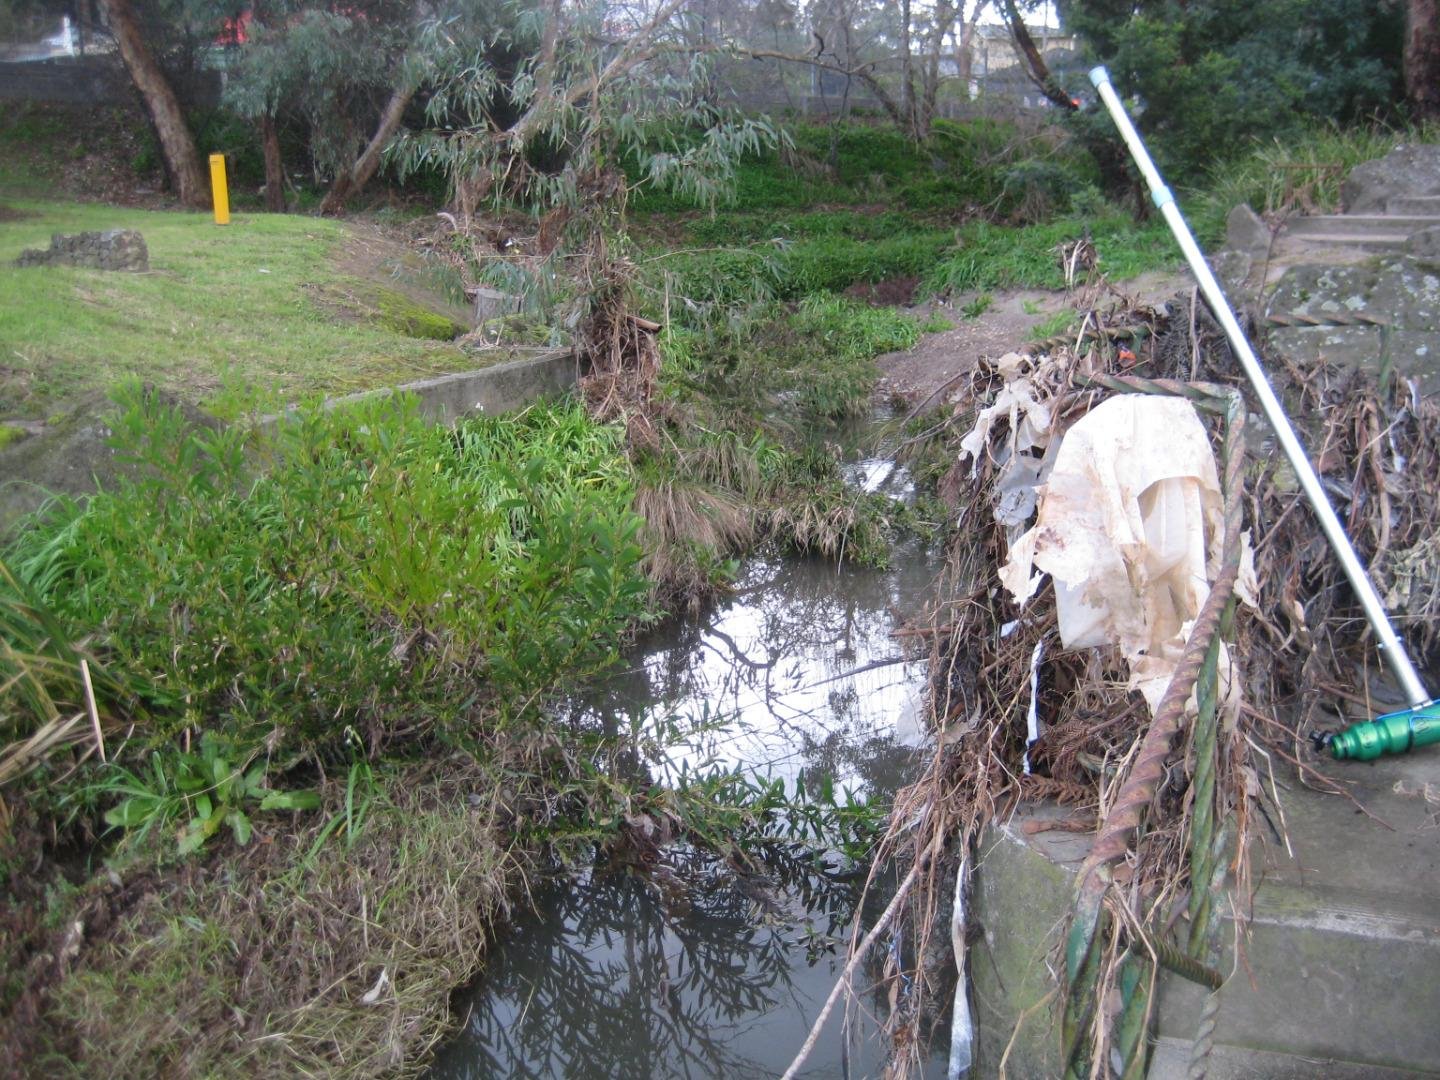 evidence of recent high water flow